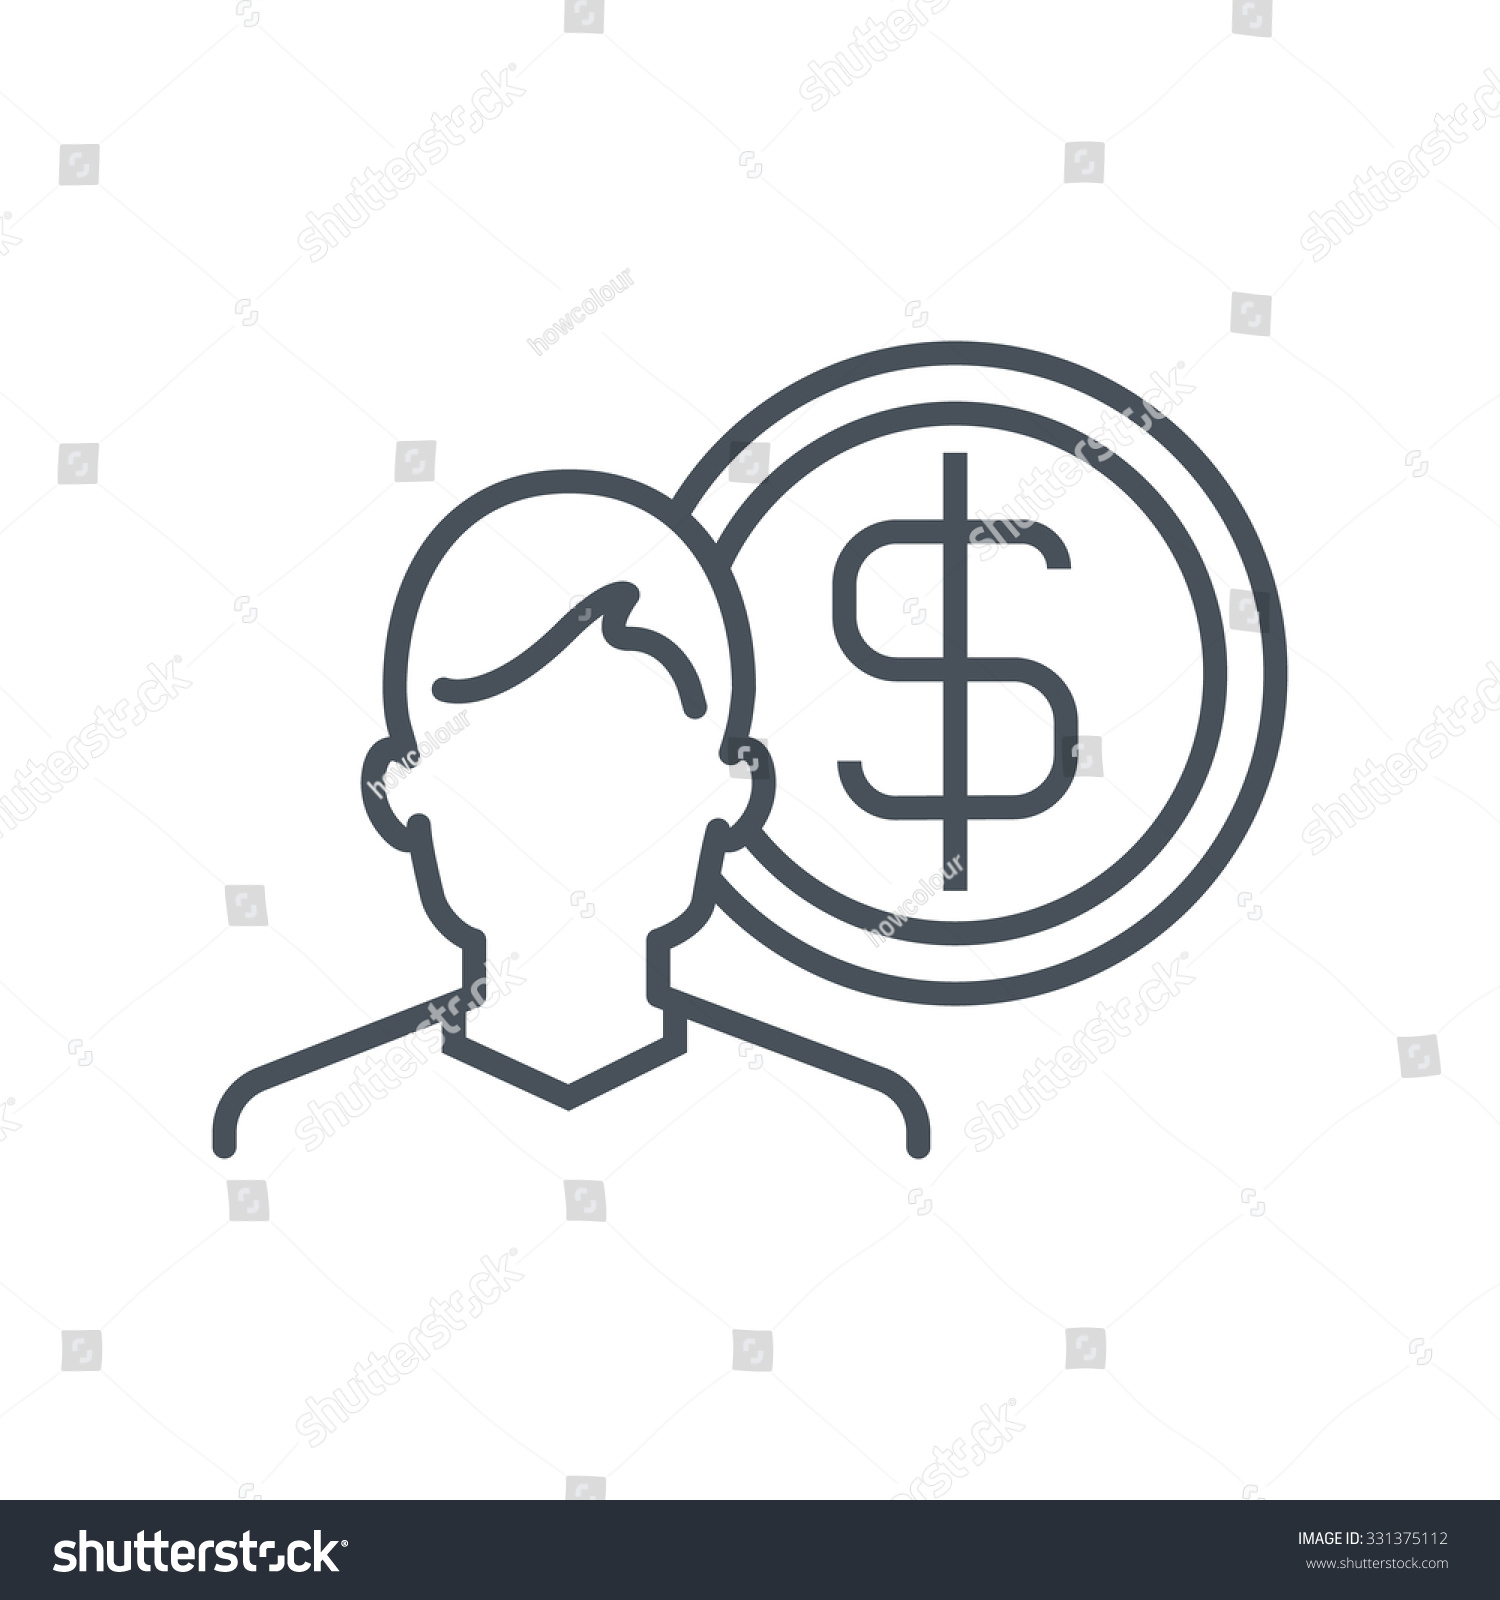 wealth salary icon suitable info graphics stock vector  wealth salary icon suitable for info graphics websites and print media colorful vector